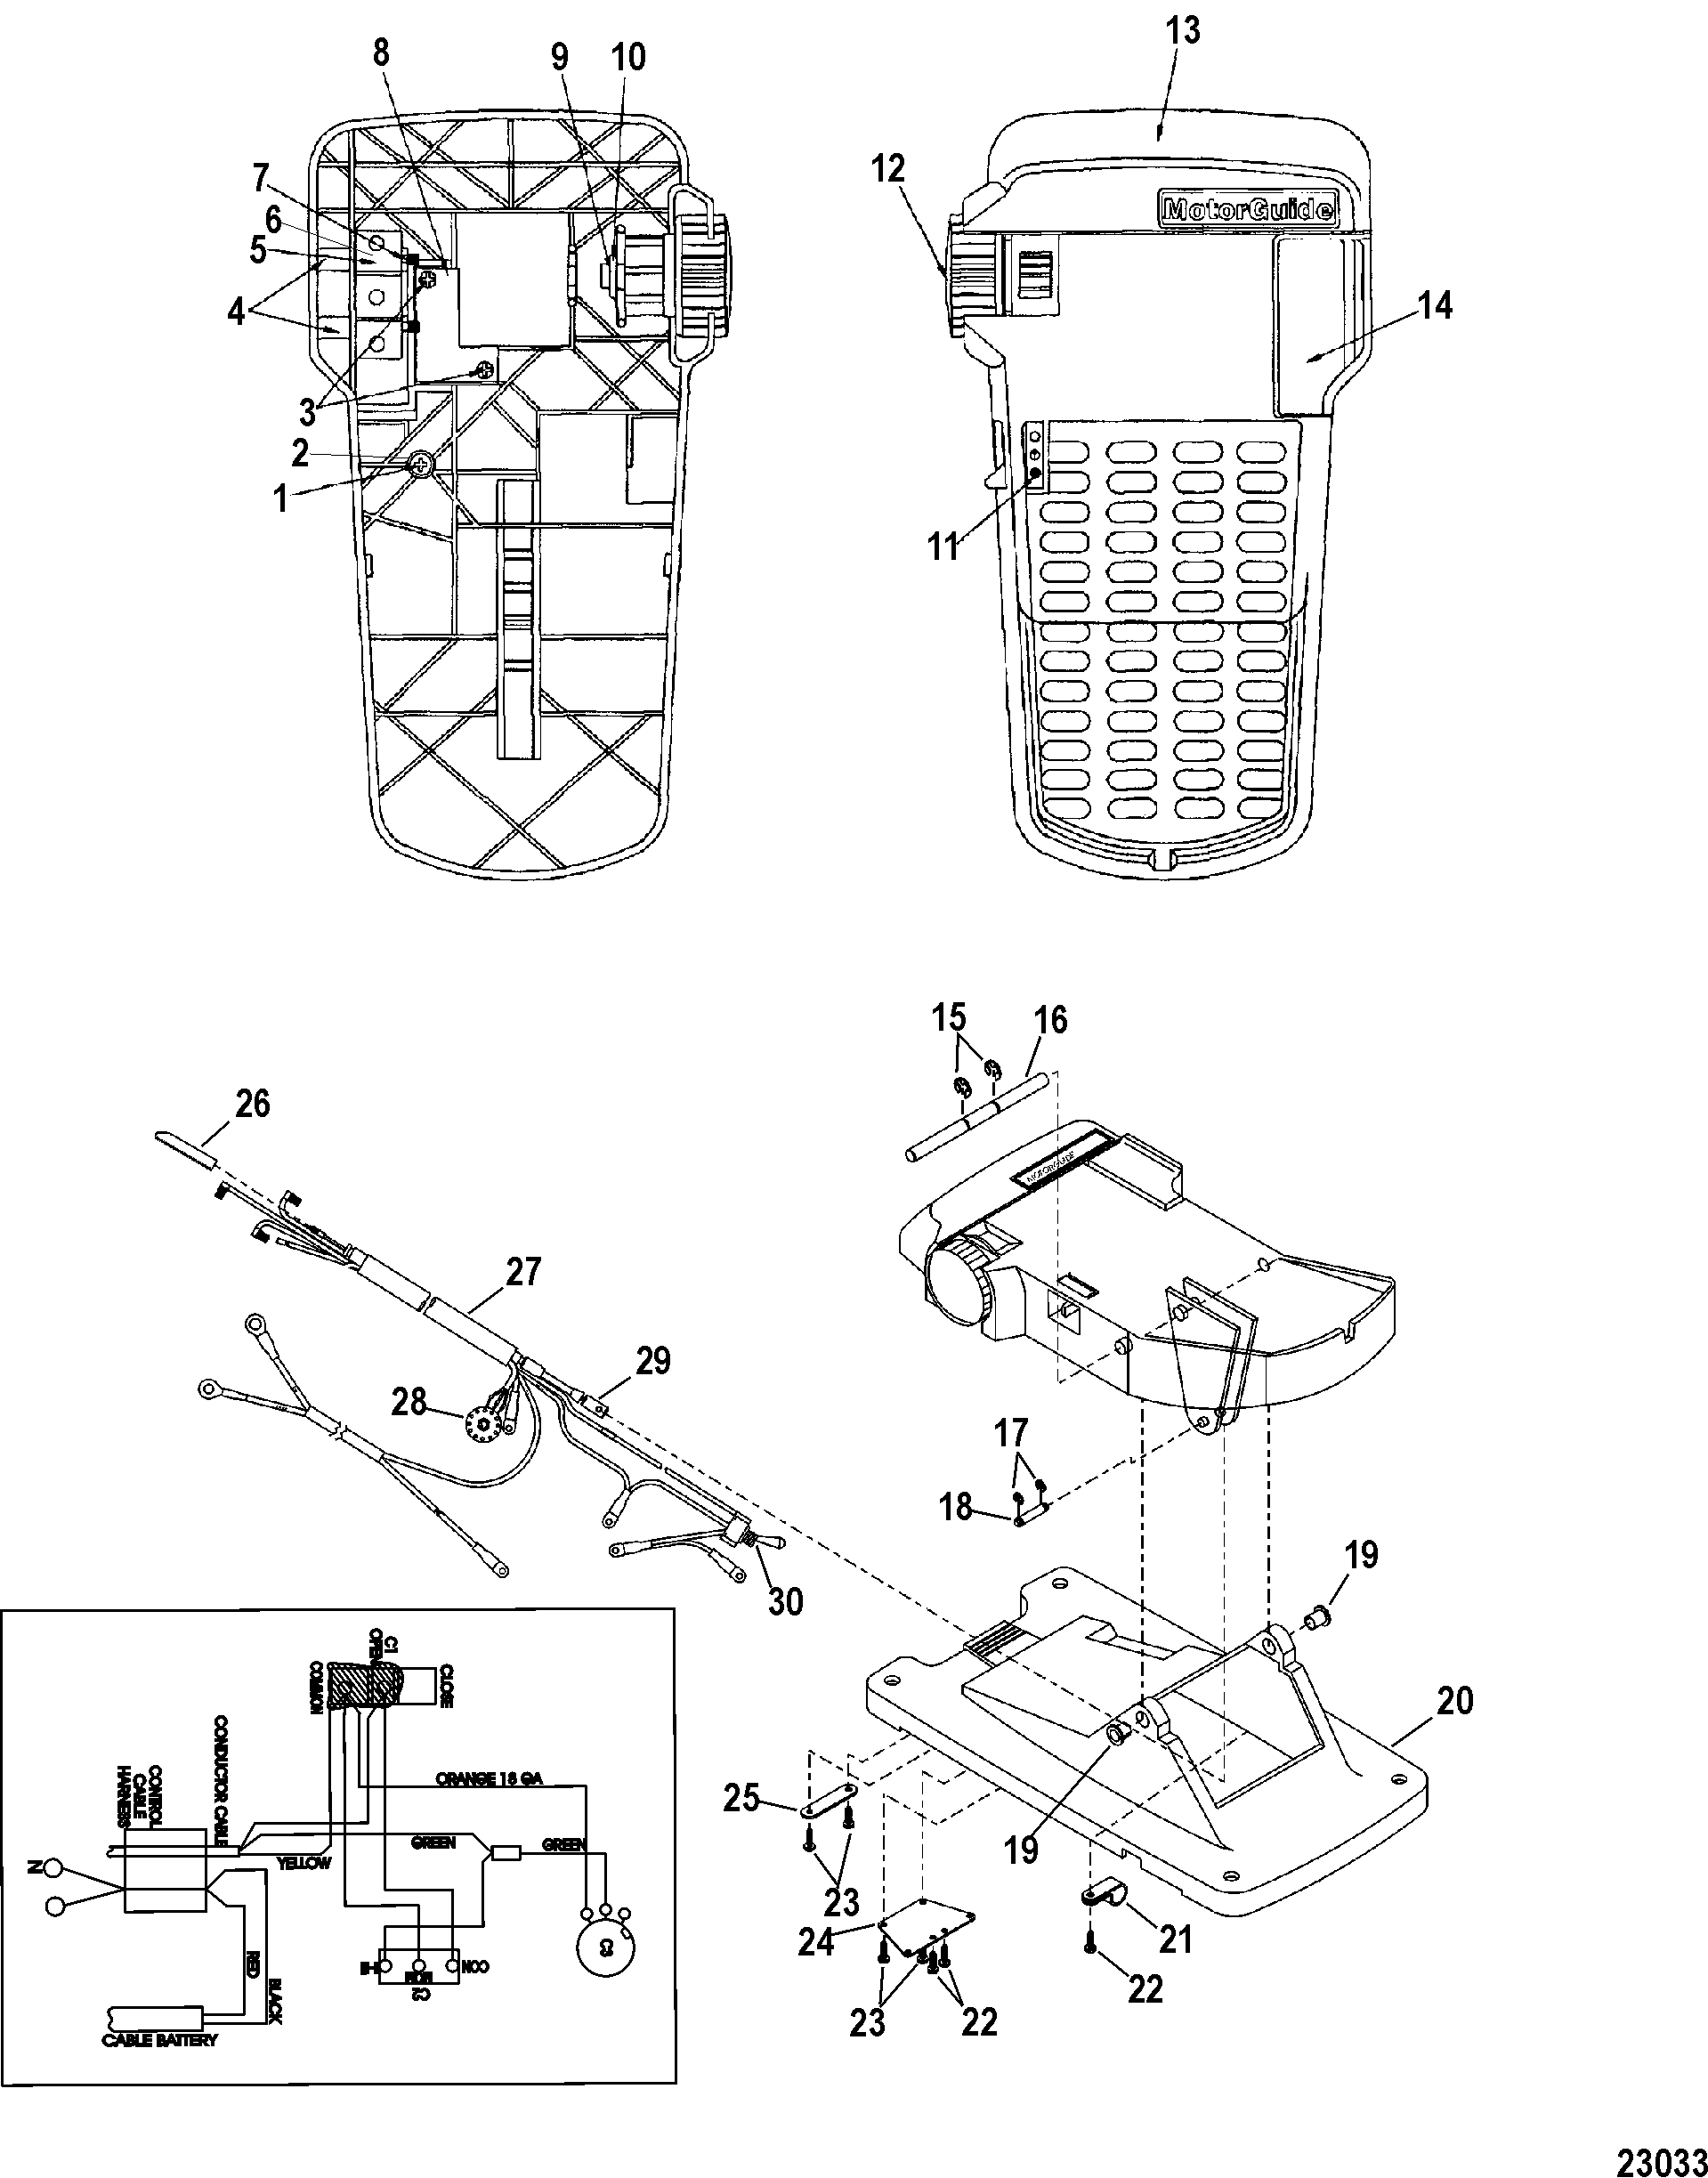 12 Volt Cable Motor